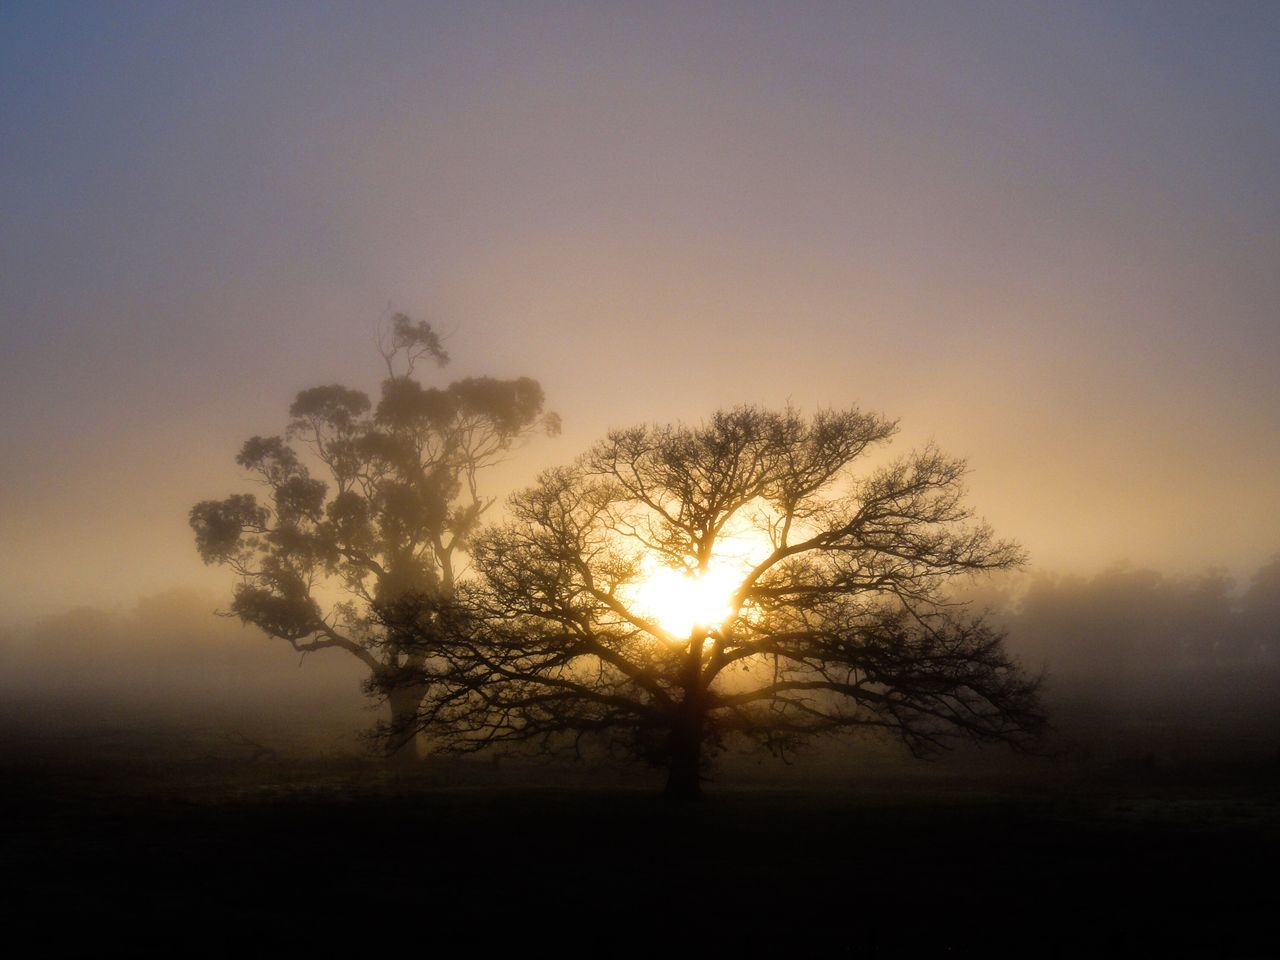 sunset, sun, nature, tree, tranquil scene, beauty in nature, tranquility, sunbeam, scenics, sunlight, silhouette, clear sky, landscape, idyllic, outdoors, no people, field, sky, lone, hazy, branch, day